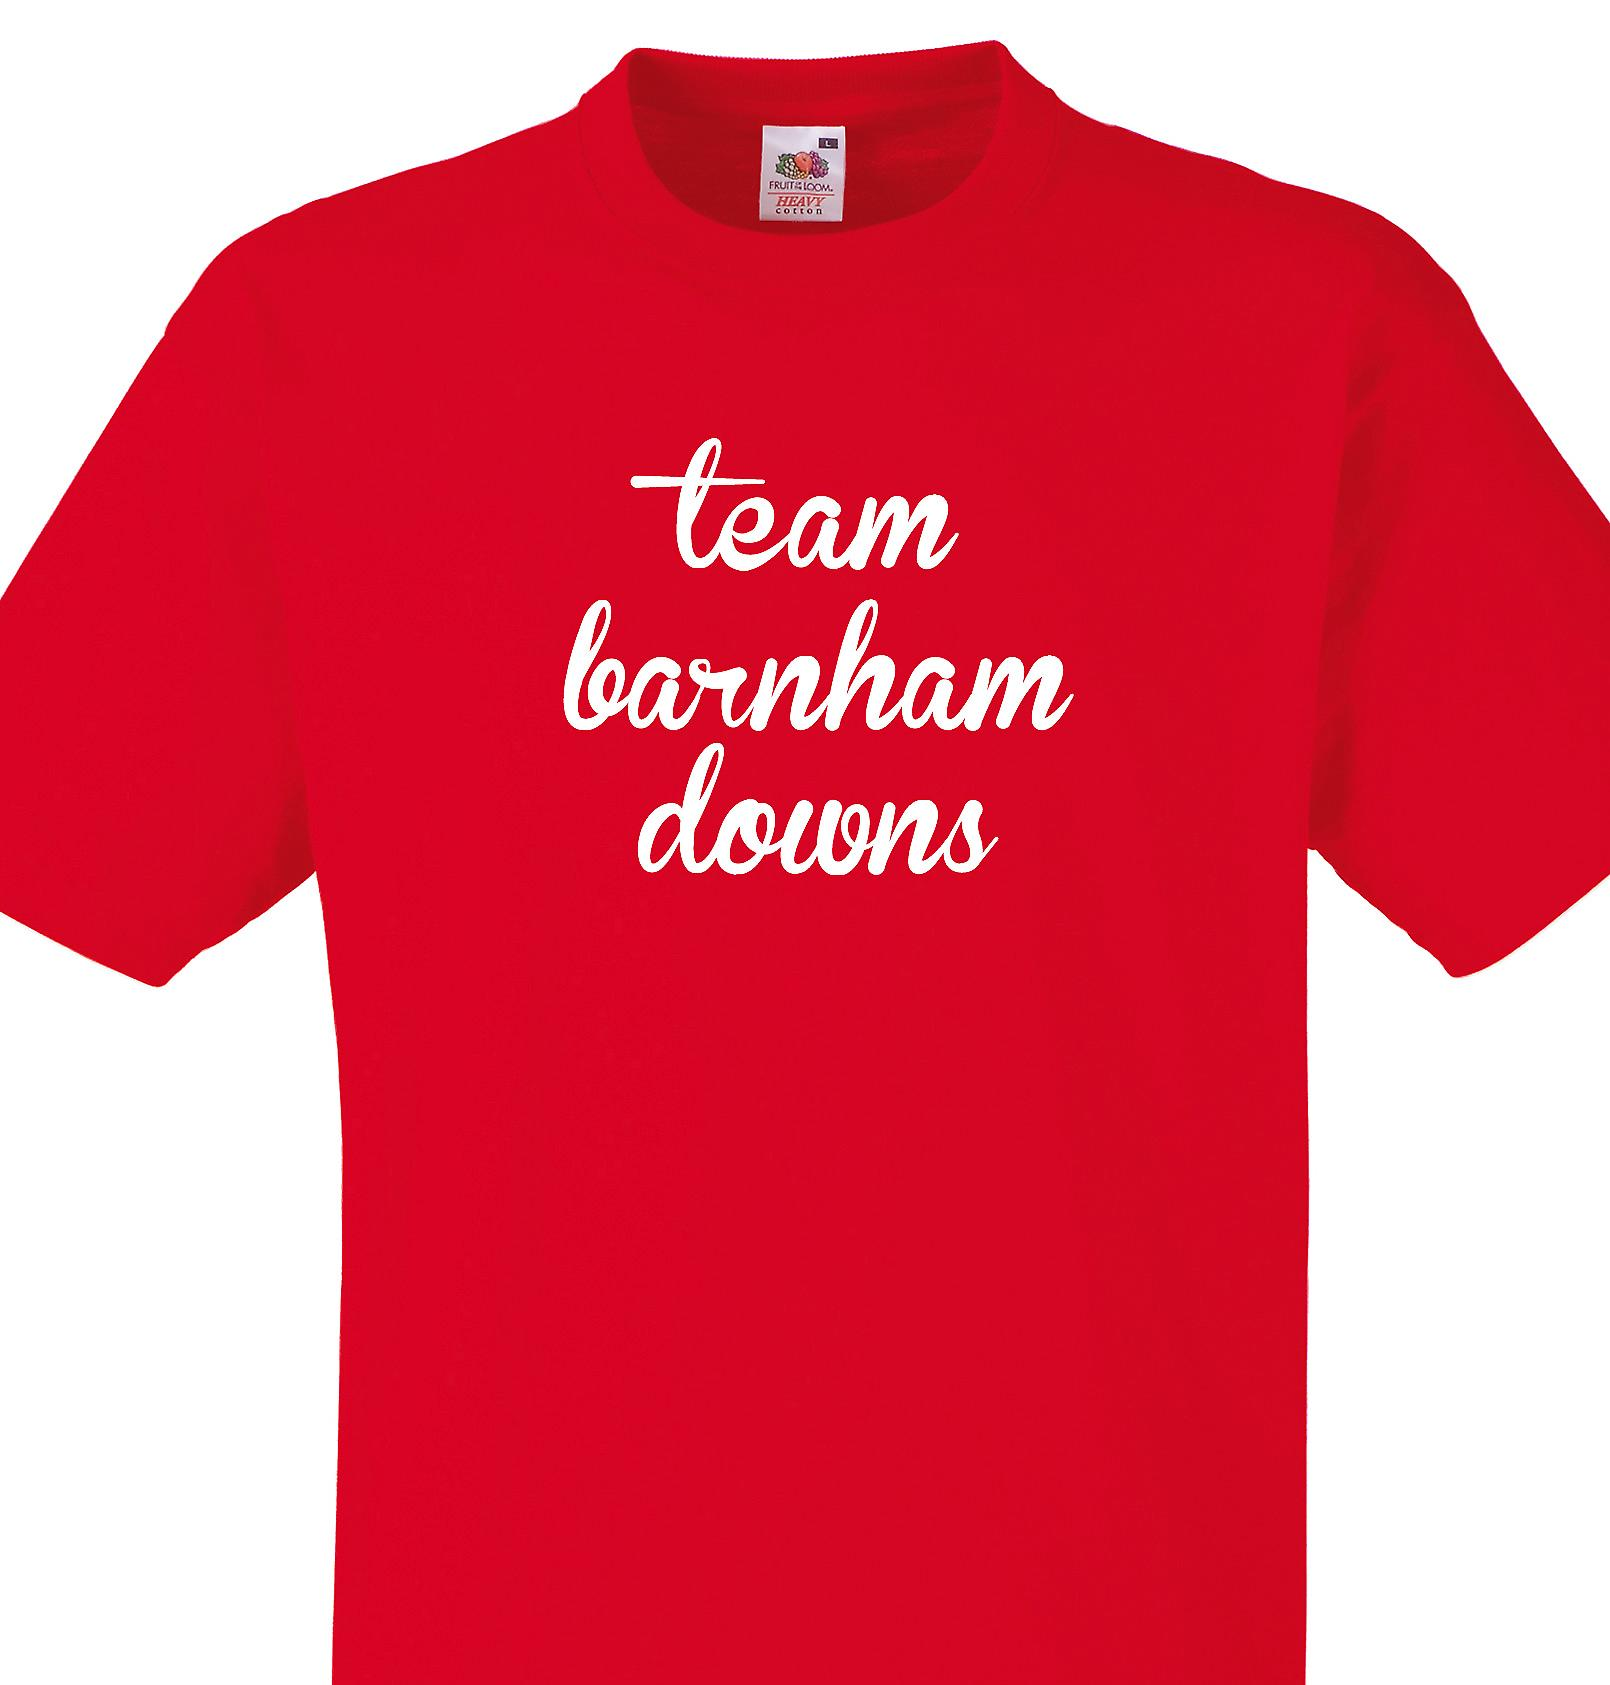 Team Barnham downs Red T shirt